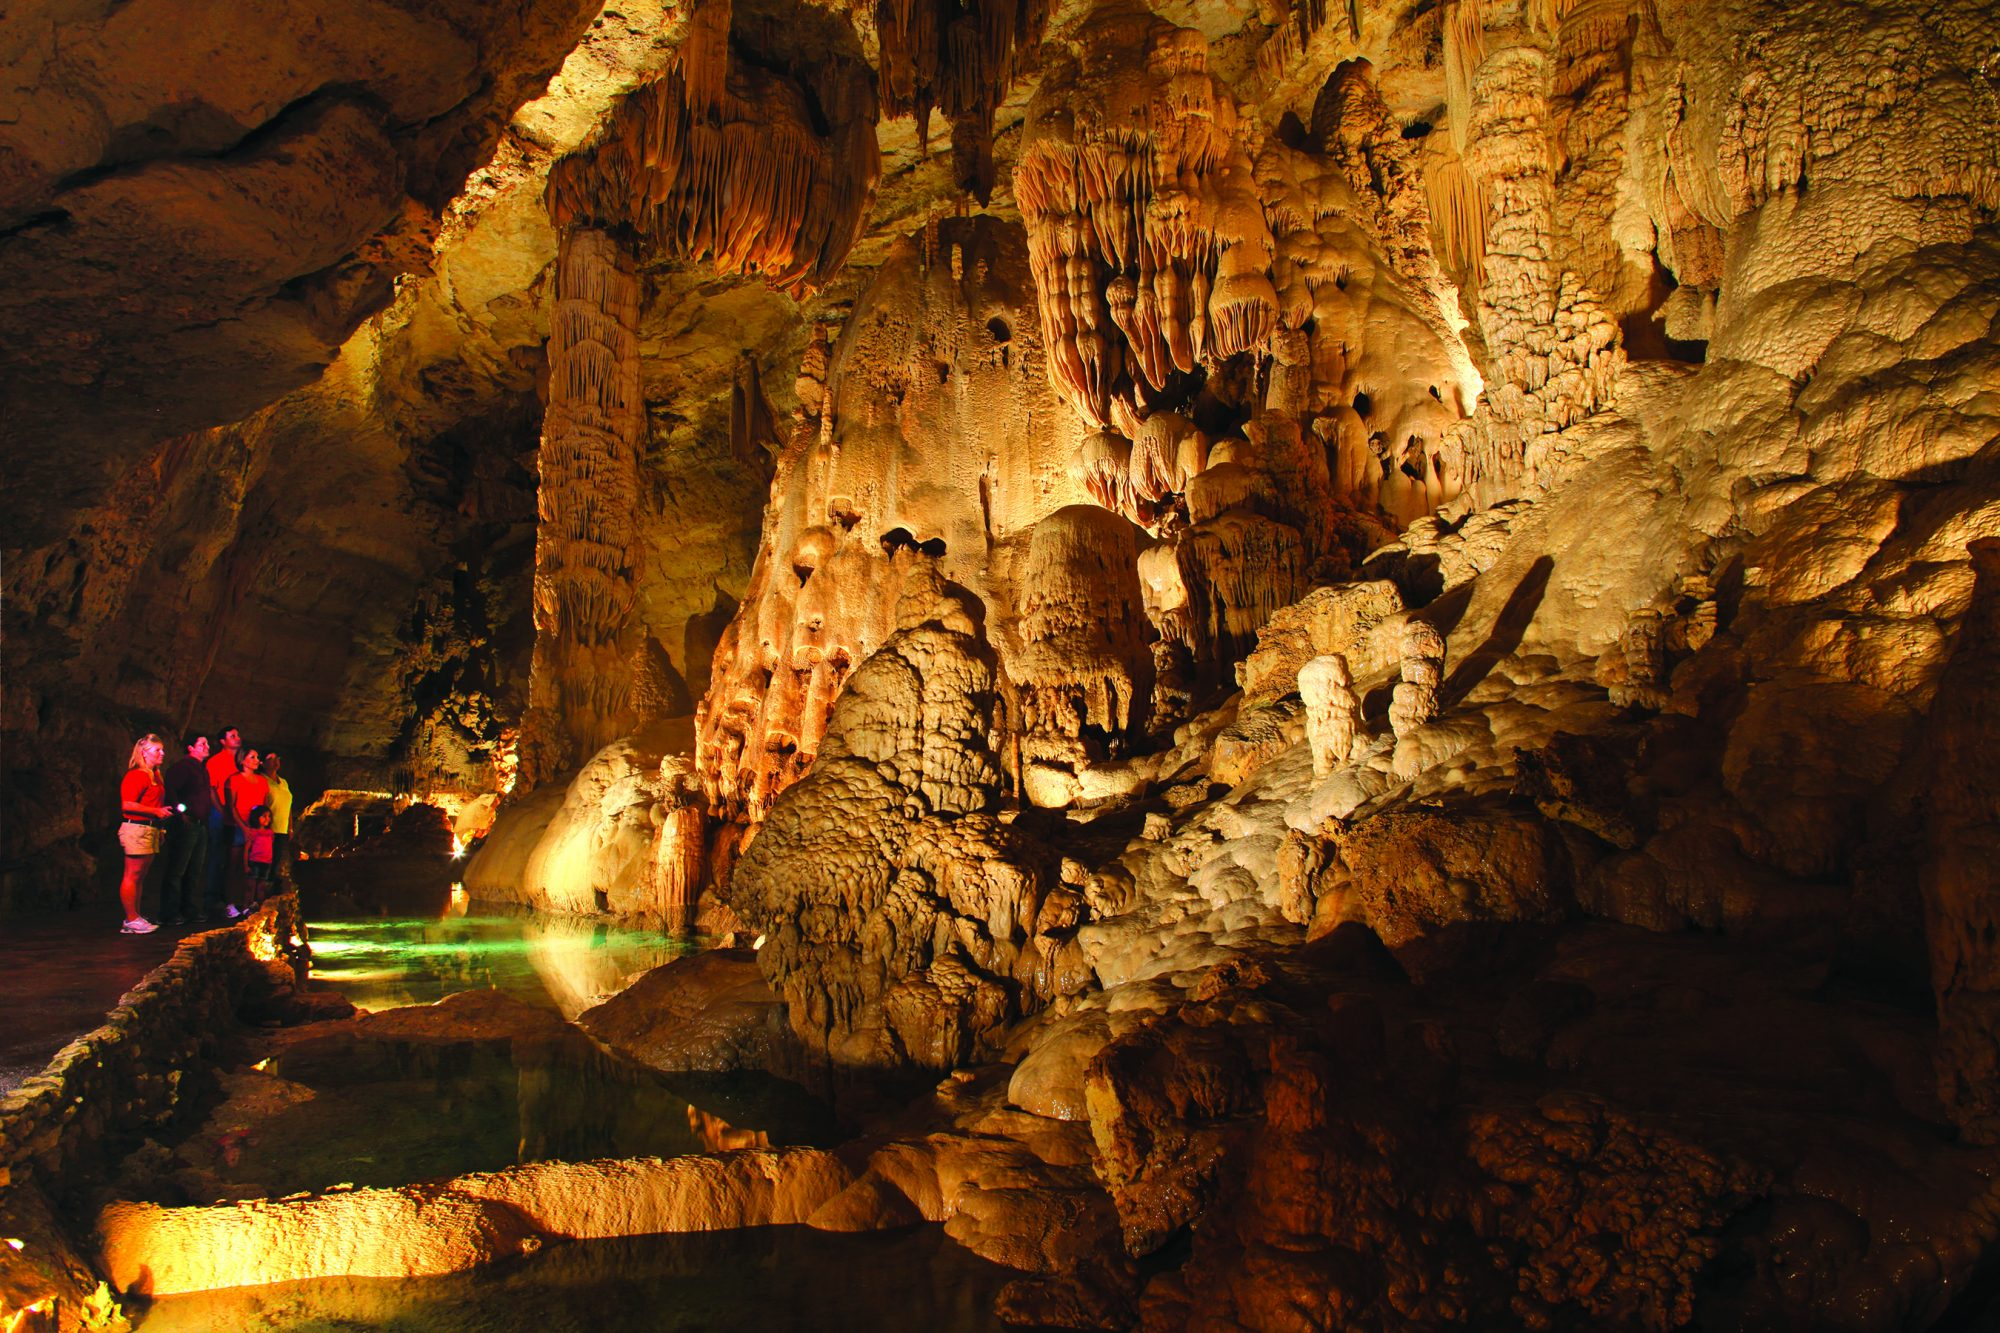 Natural Bridge Caverns Castle of the White Giants